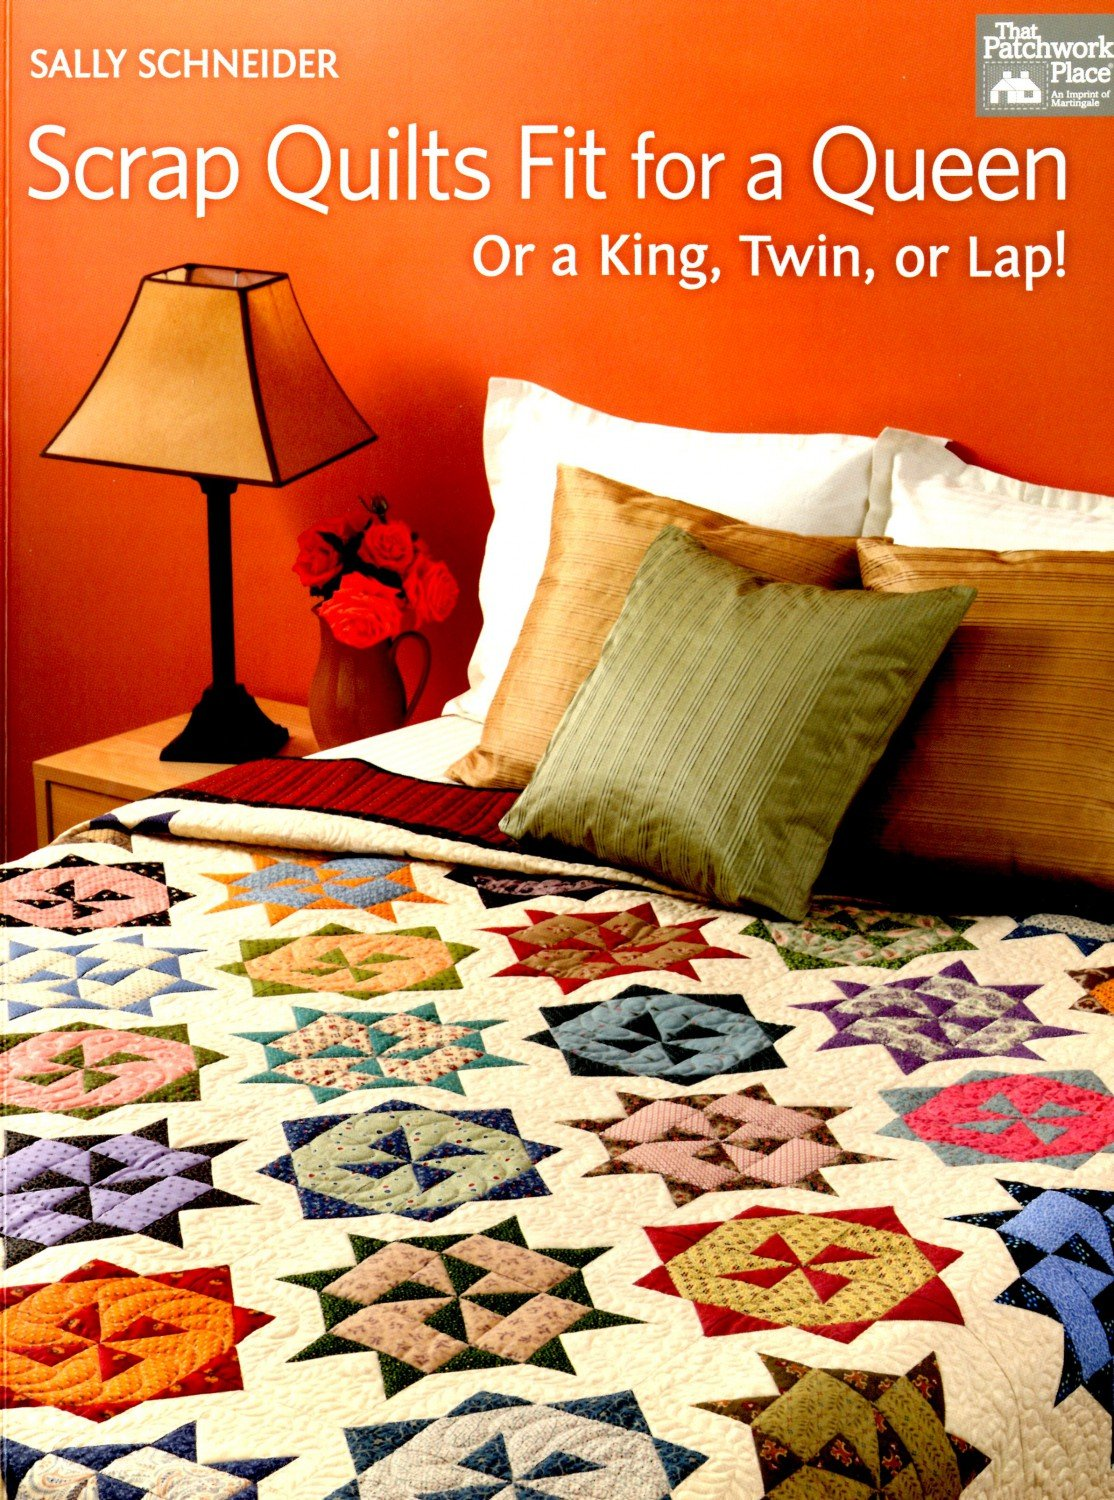 Scrap Quilts Fit for a Queen - B1150T - MAY BE RESTOCKED UPON REQUEST